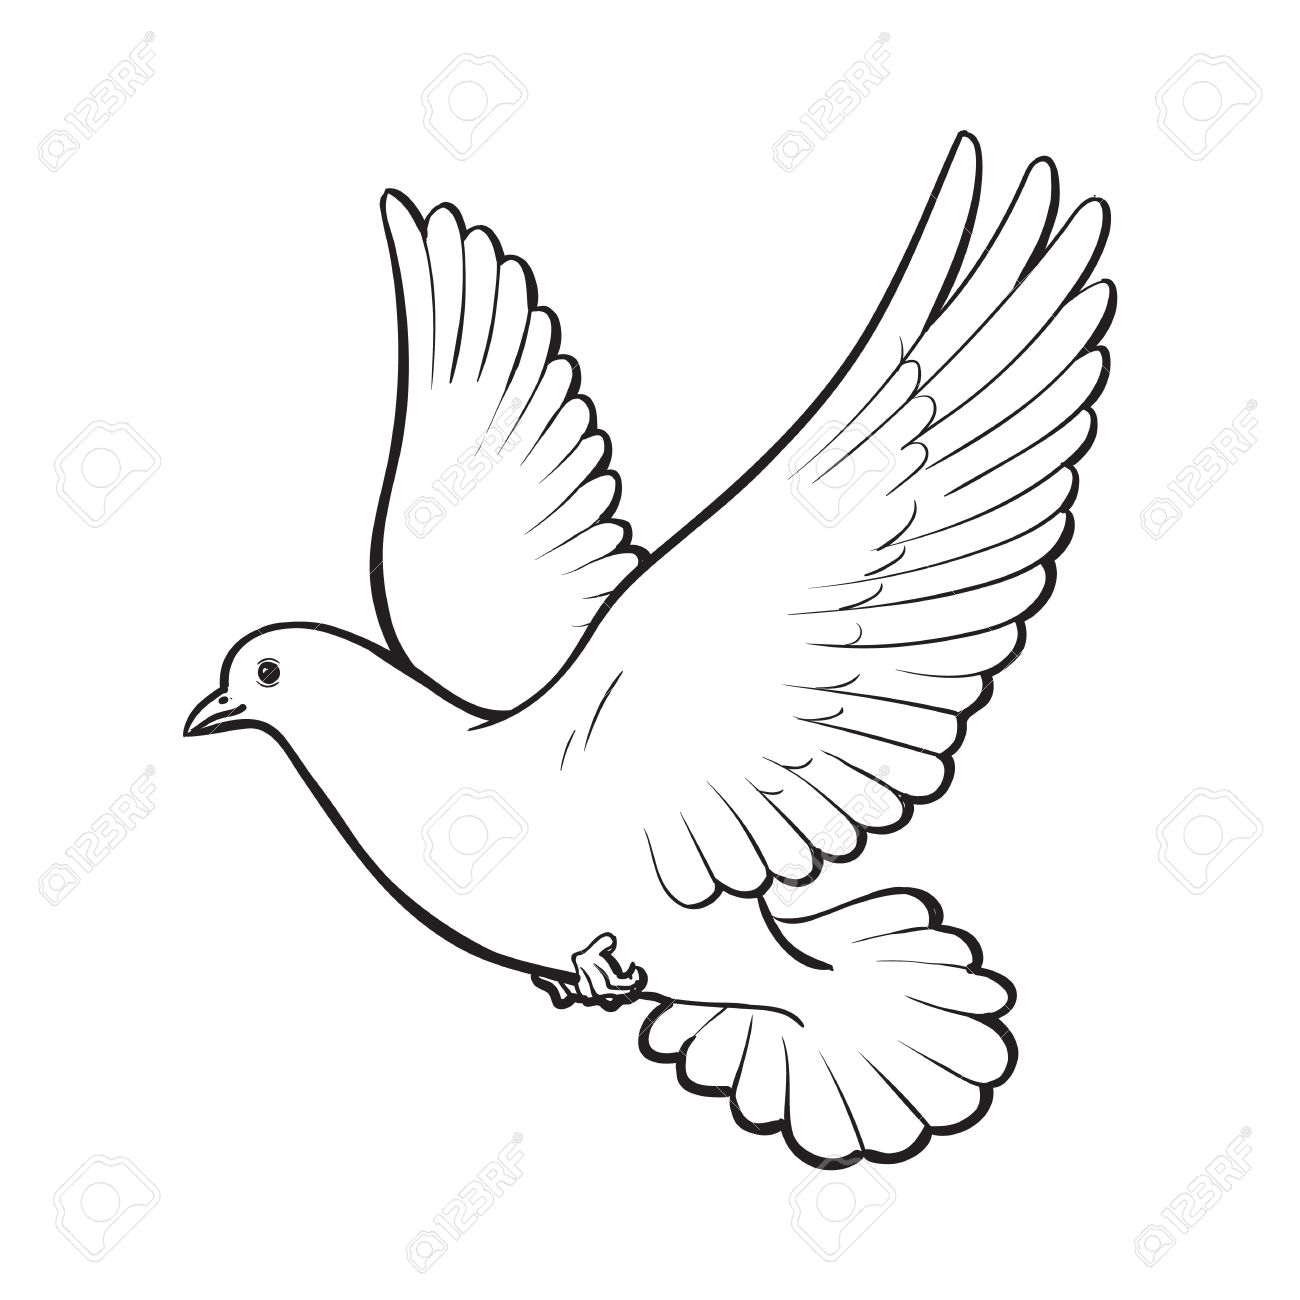 Free flying white dove, sketch style vector illustration isolated